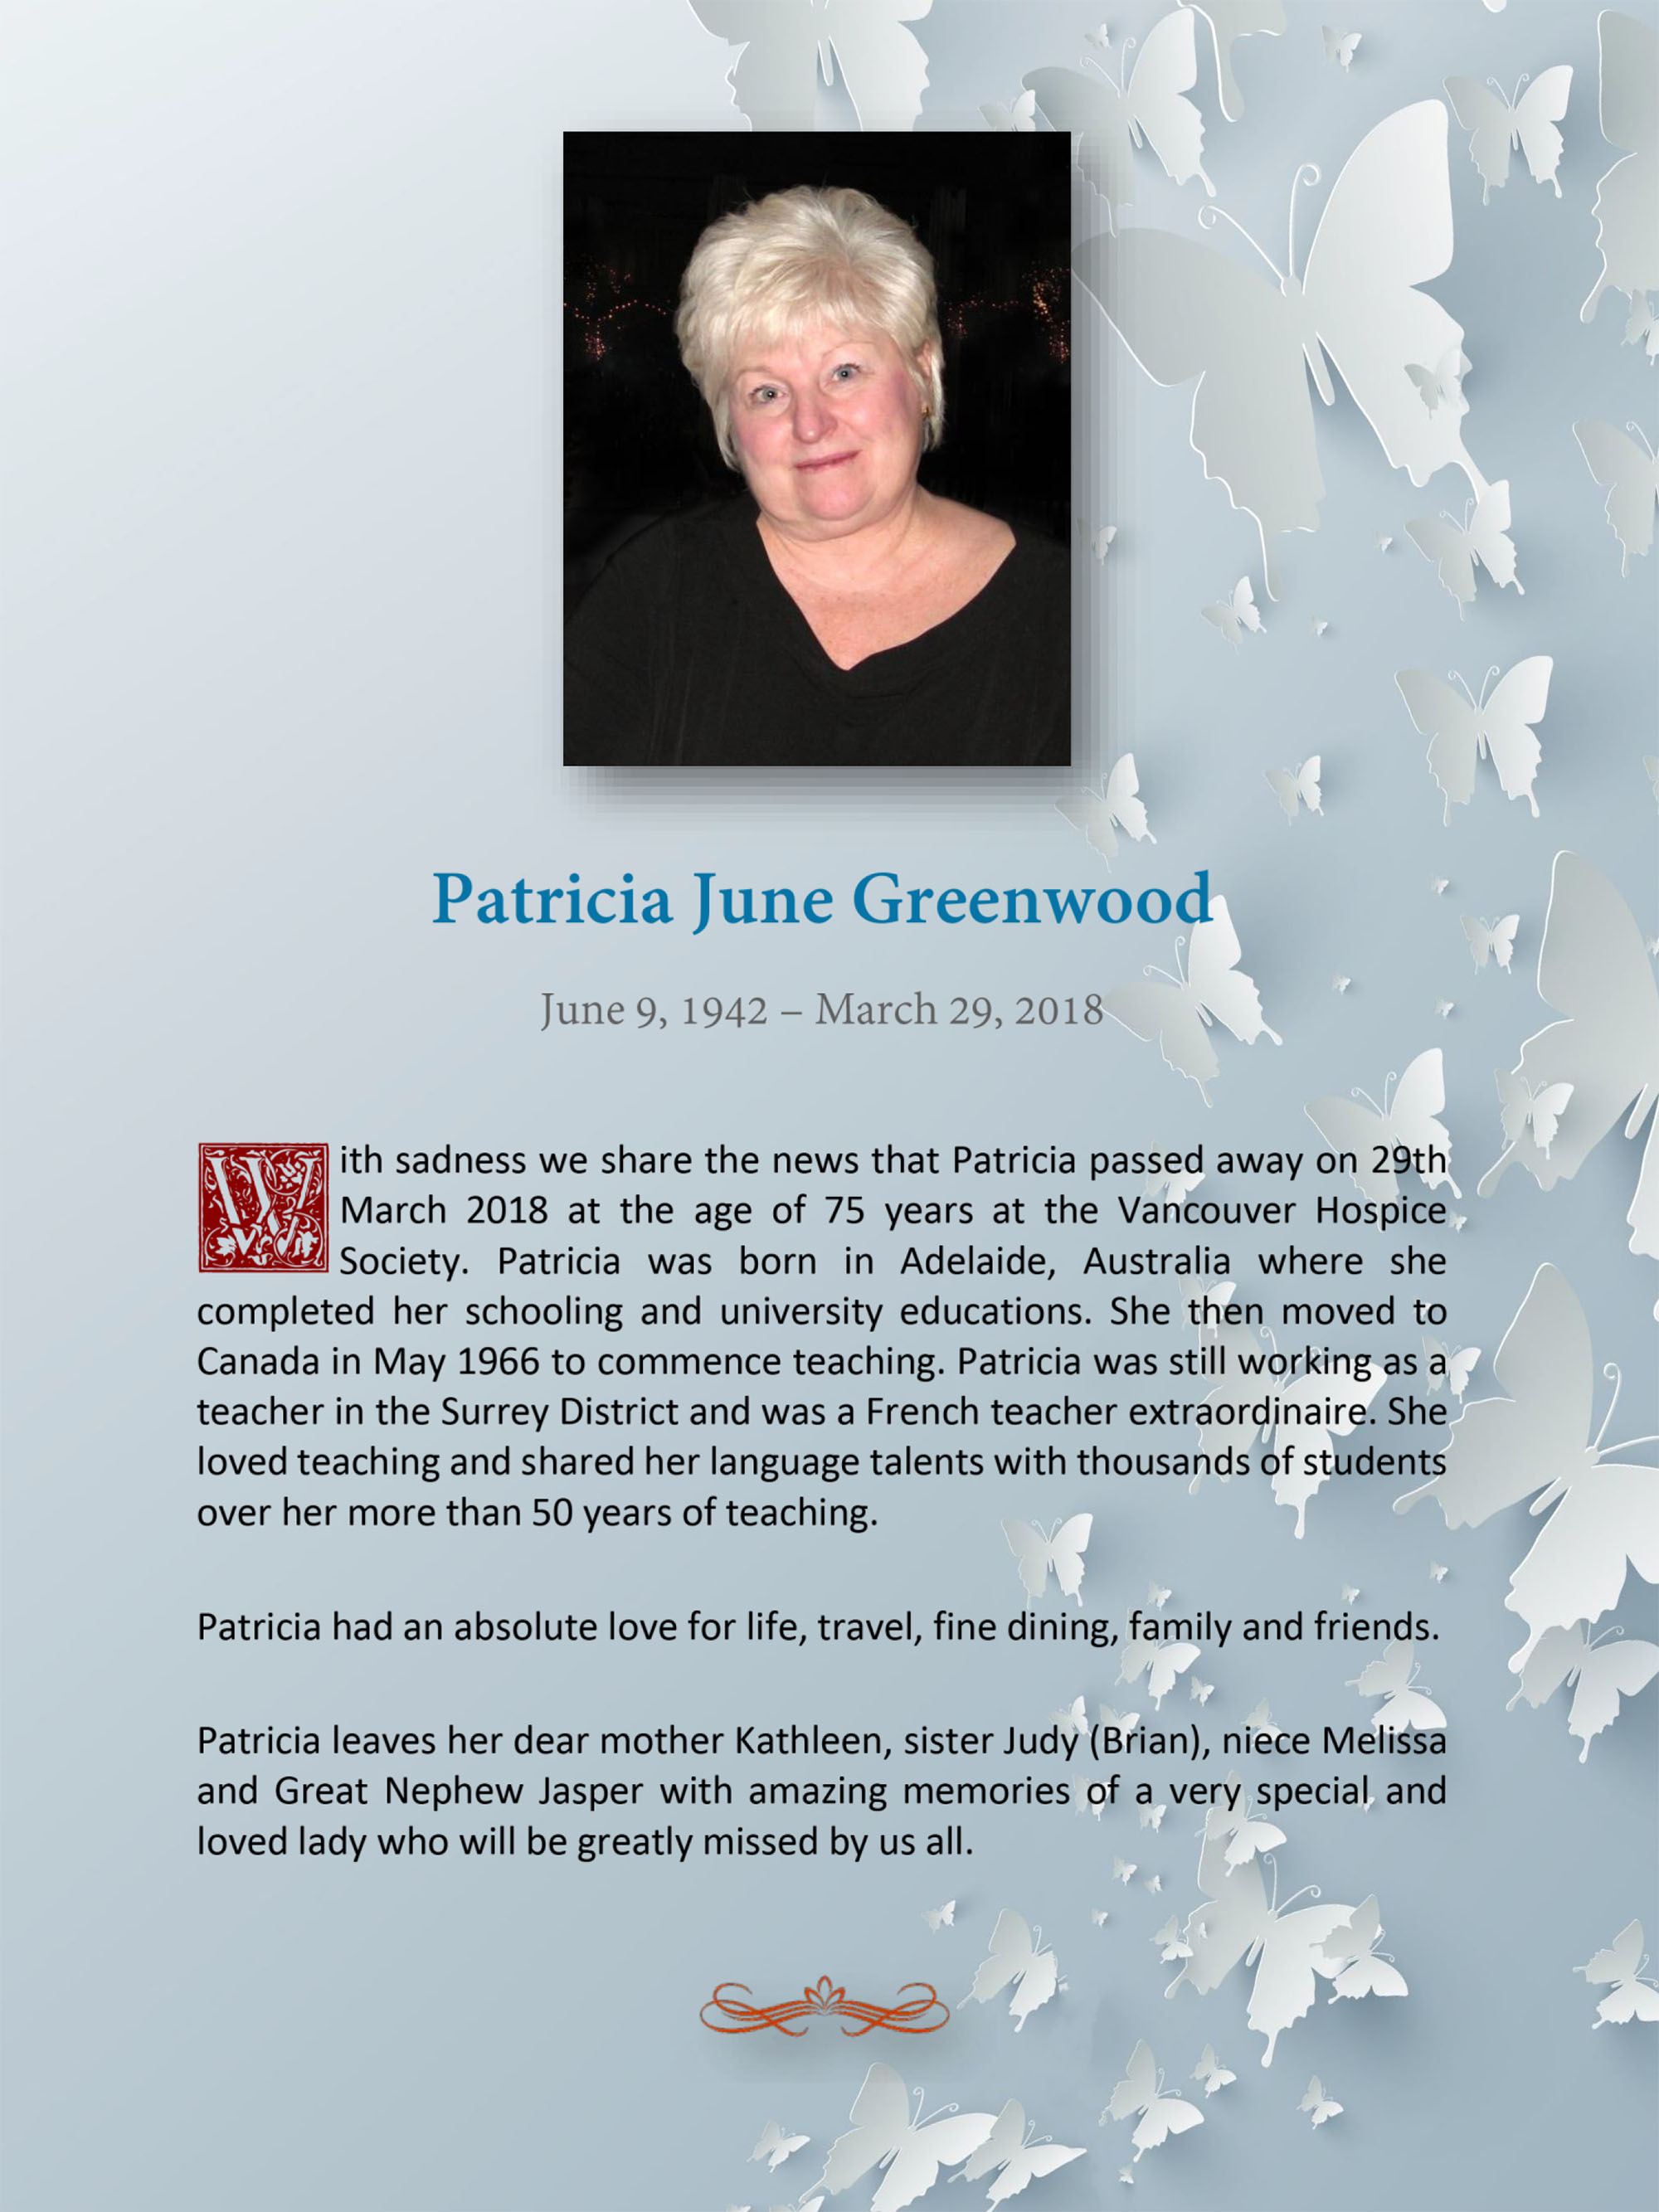 Obituary for Patricia June Greenwood